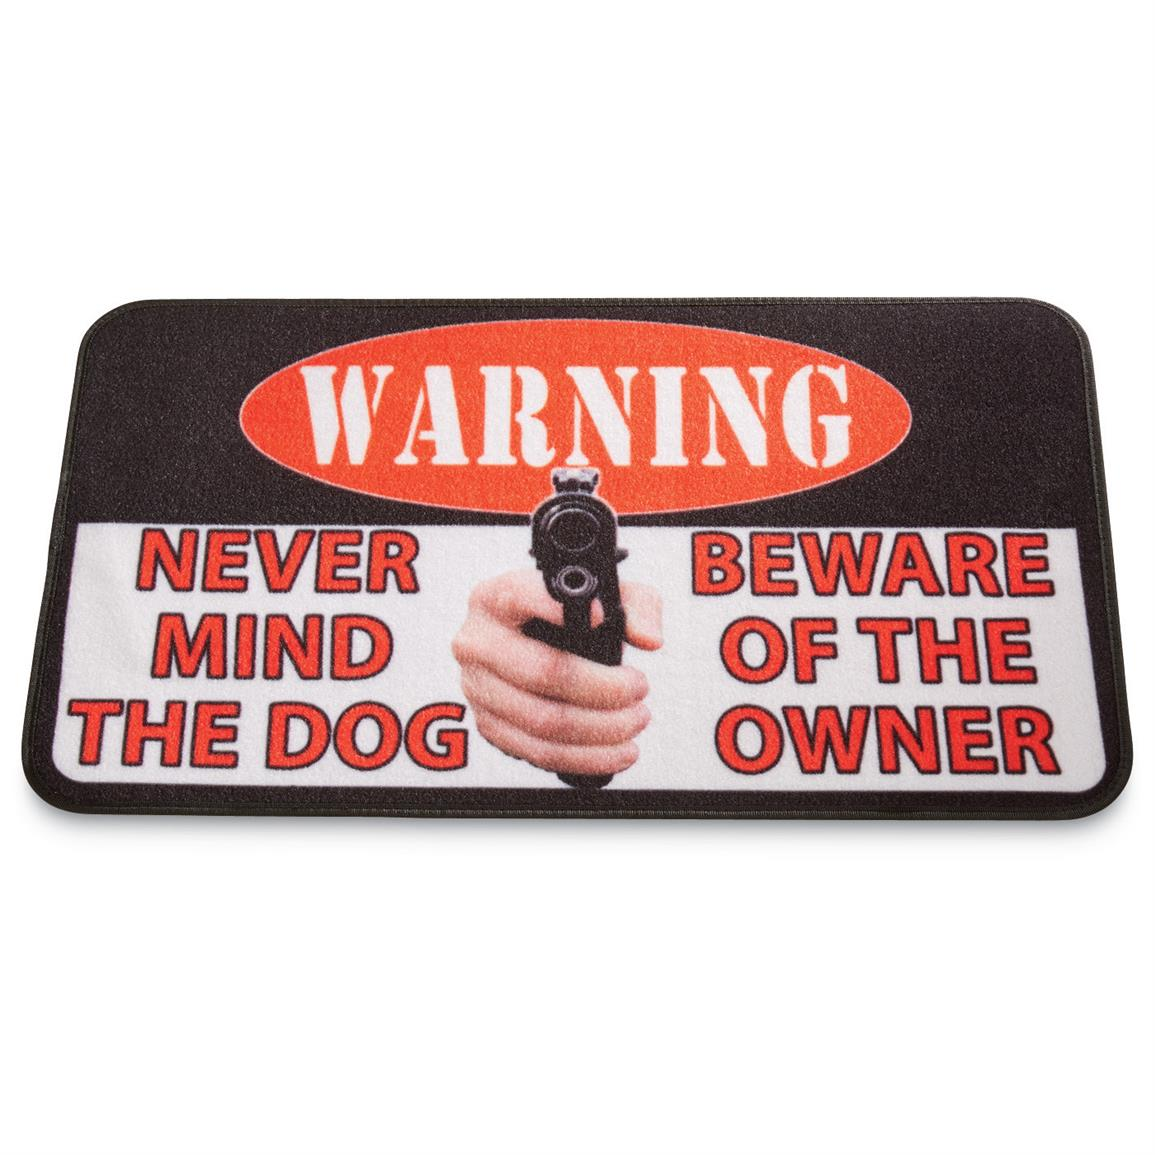 Beware of Owner Doormat